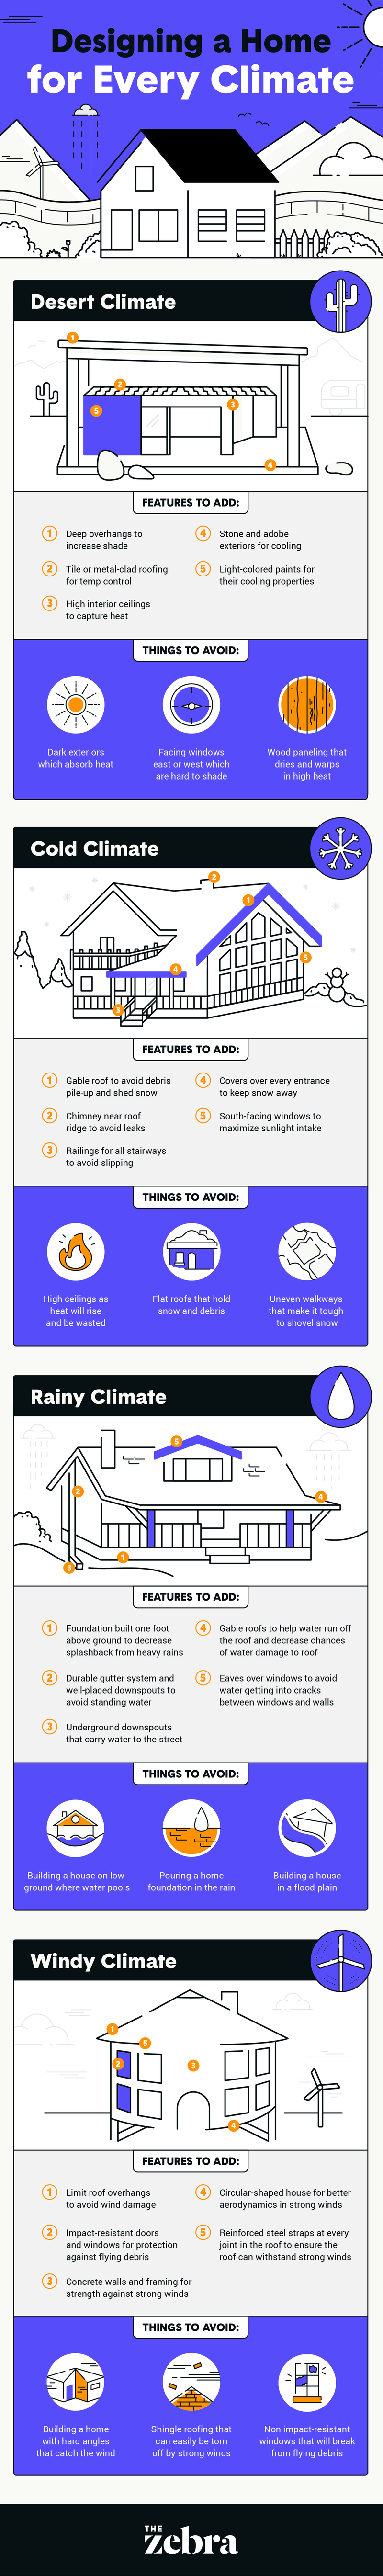 designing a home for every climate infographic 2